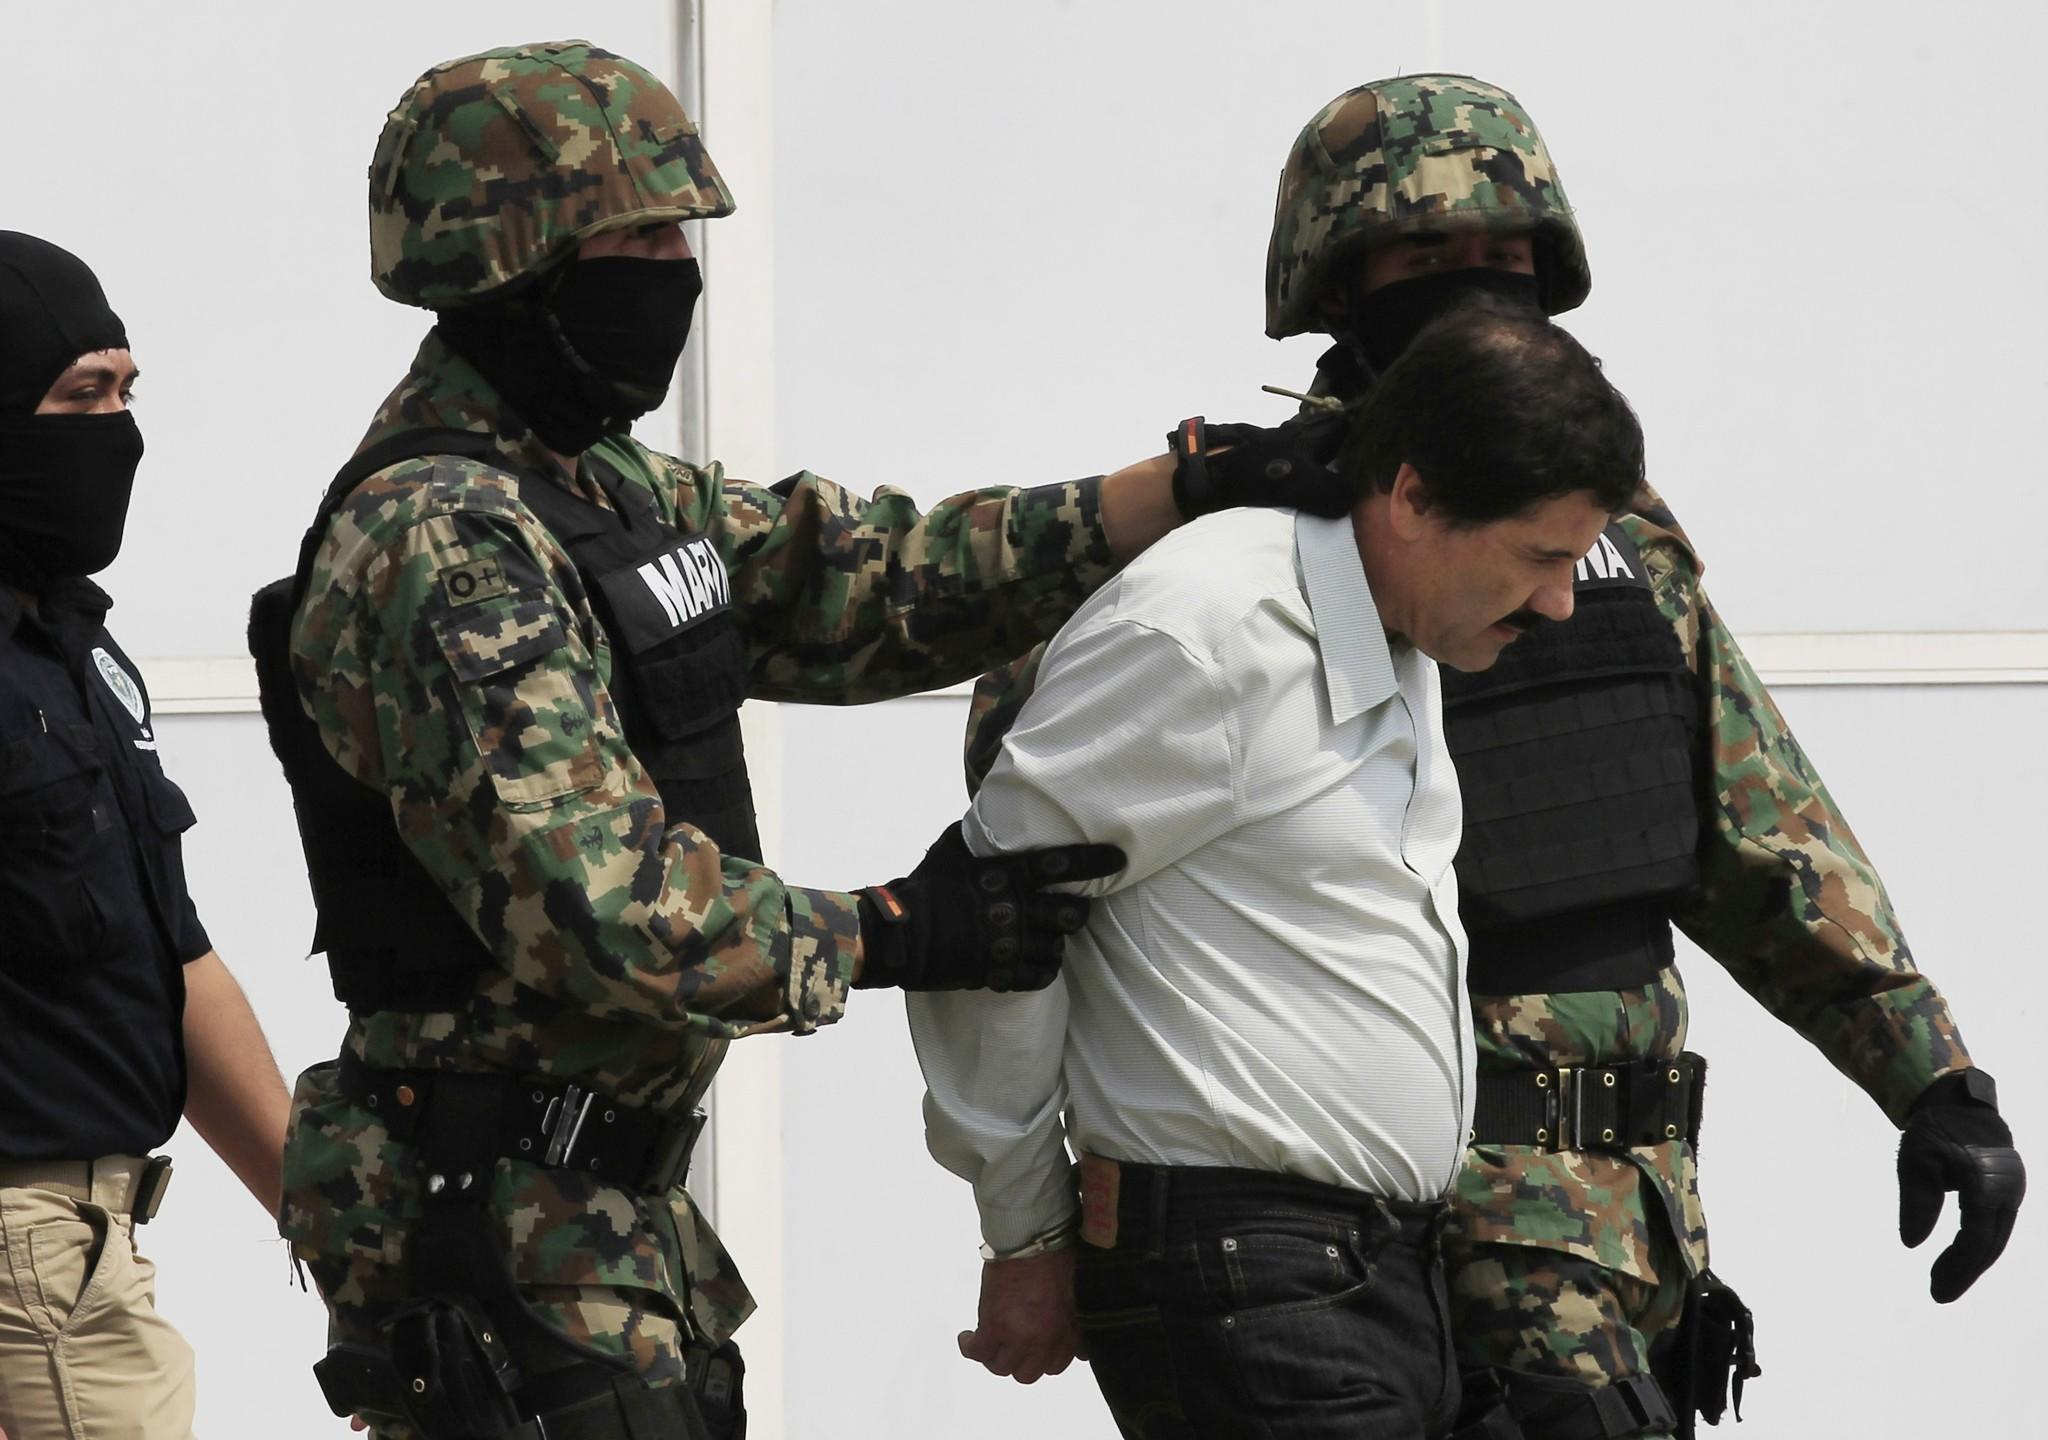 """Joaquin """"Shorty"""" Guzman (R) is escorted by soldiers during a presentation at the Navy's airstrip in Mexico City February 22, 2014. Mexico has captured its most wanted man, drug kingpin Guzman, President Enrique Pena Nieto said via Twitter on Saturday, in a major victory in a long, grisly fight against drug gangs. Guzman, known as """"El Chapo"""" (Shorty) in Spanish, runs Mexico's infamous Sinaloa Cartel and over the past decade emerged as one of the world's most powerful organized crime bosses. REUTERS/Henry Romero (MEXICO - Tags: CIVIL UNREST CRIME LAW DRUGS SOCIETY MILITARY) ORG XMIT: CDG21"""